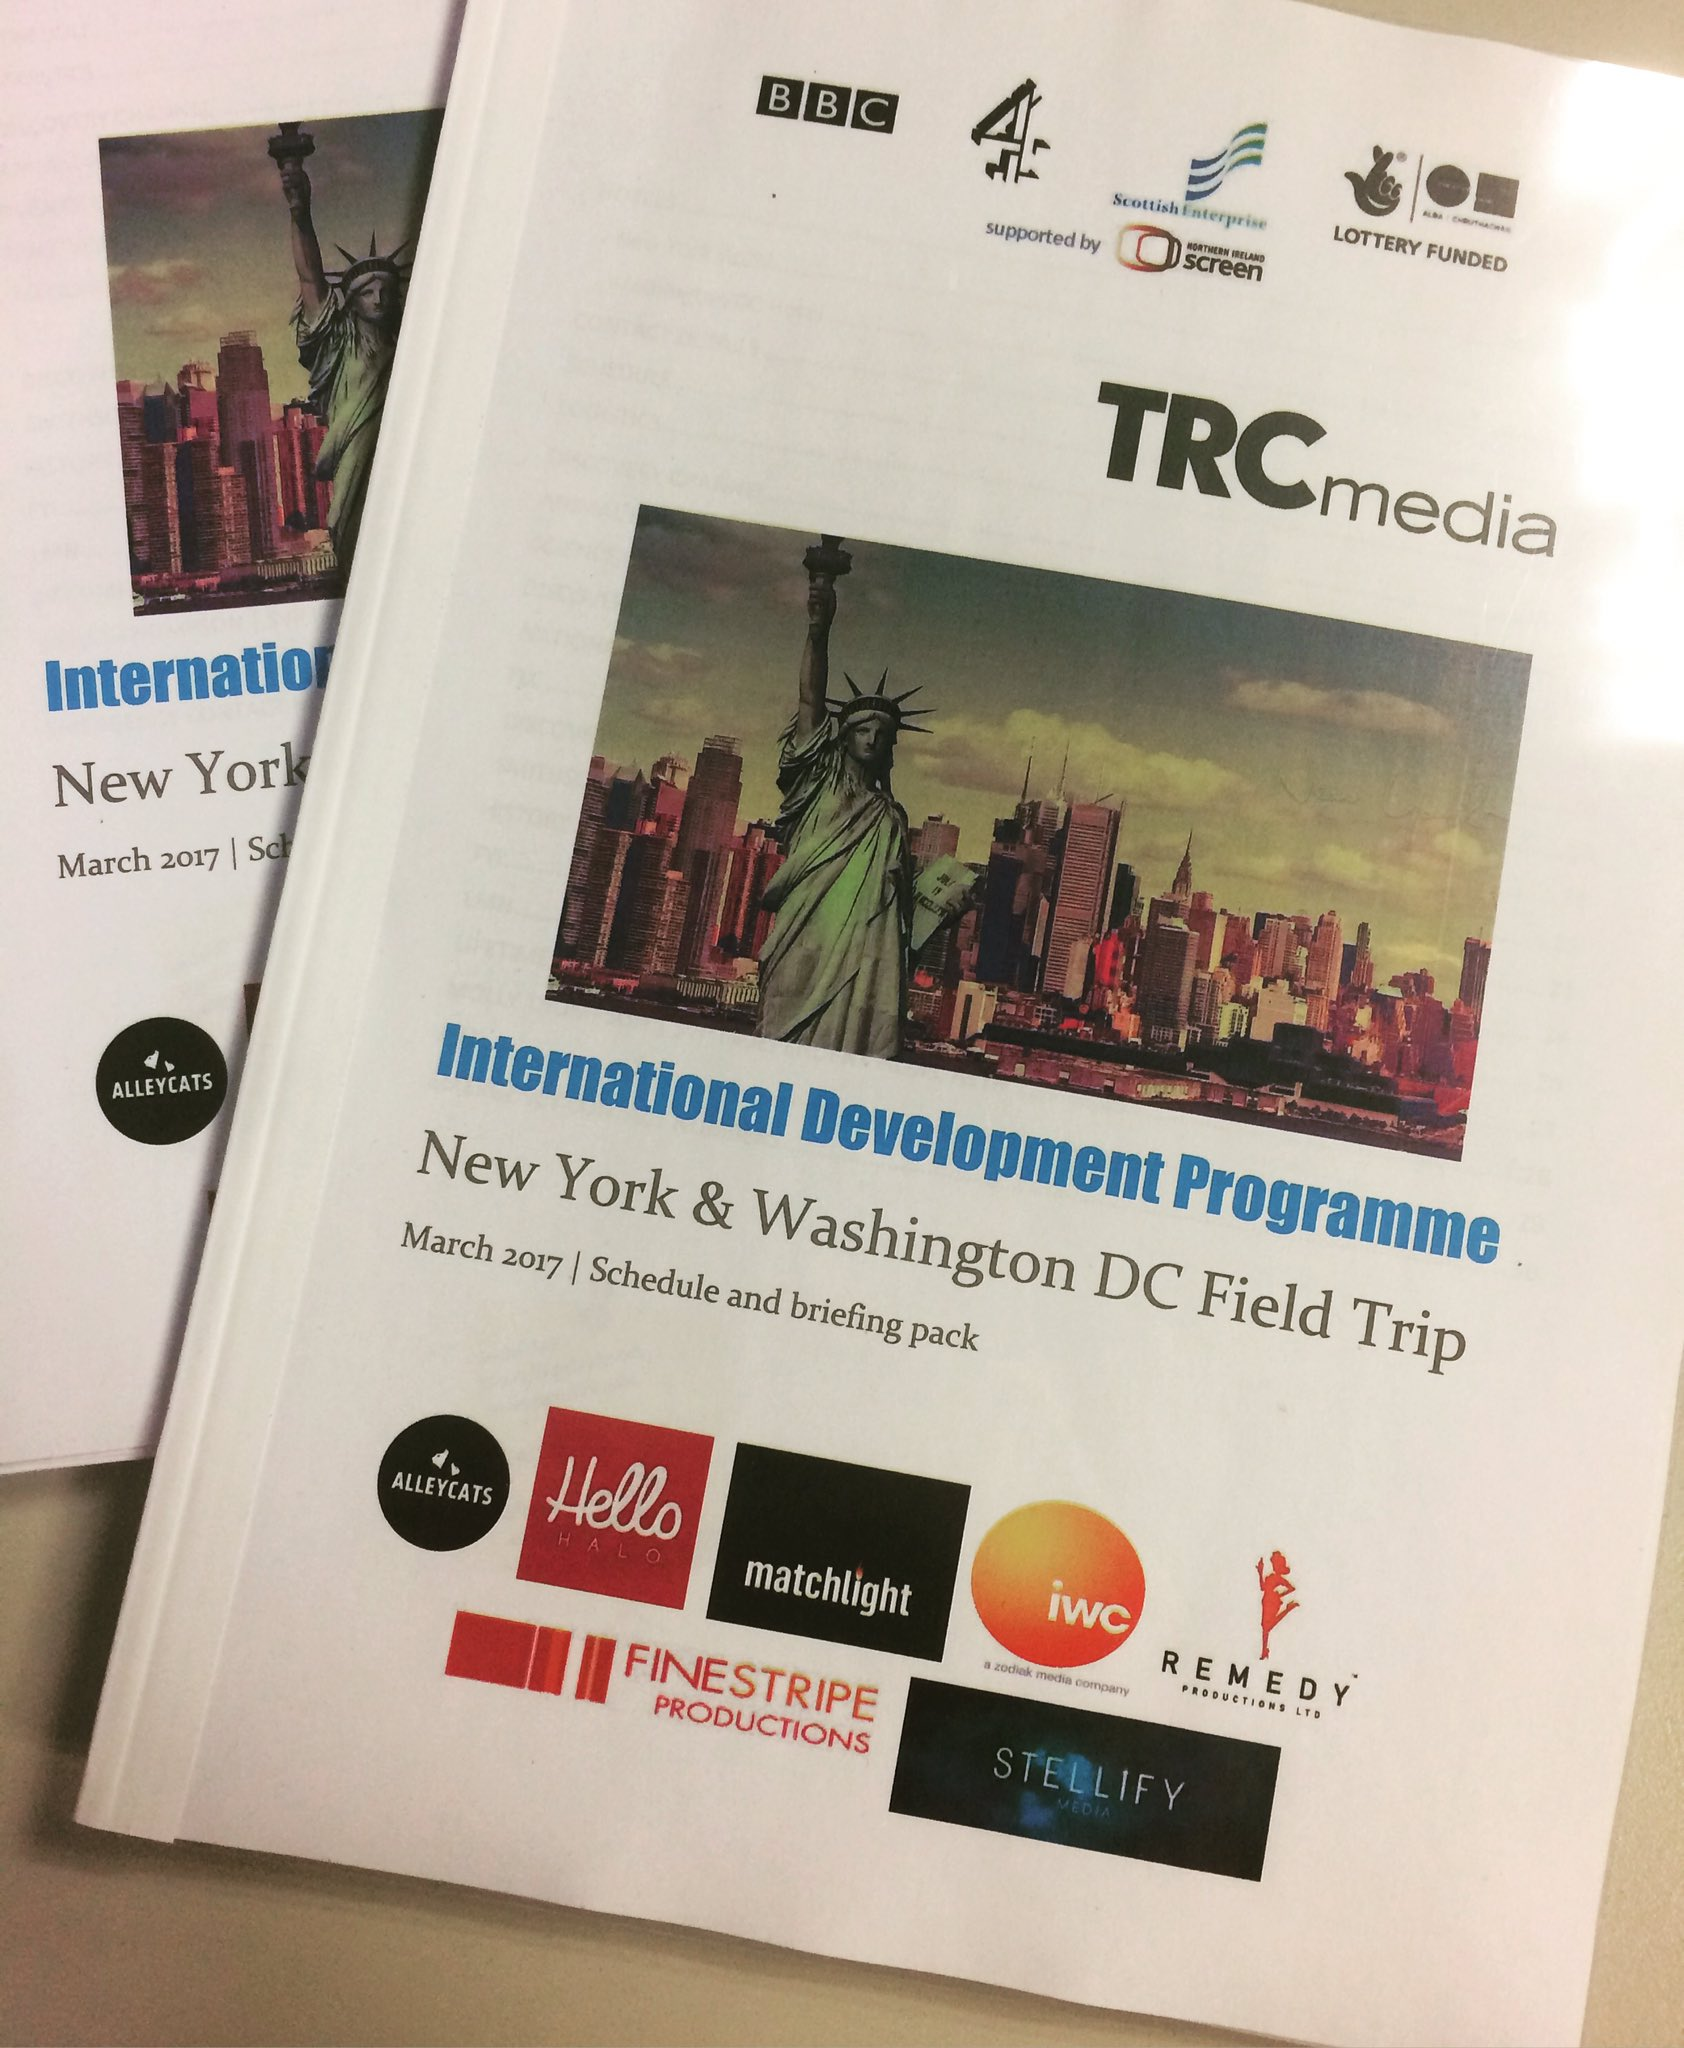 Start spreadin the news...The IDP delegates are heading to NY & DC today for meetings with top US channels 📺 #TRCidp https://t.co/oa1hzfk0nd